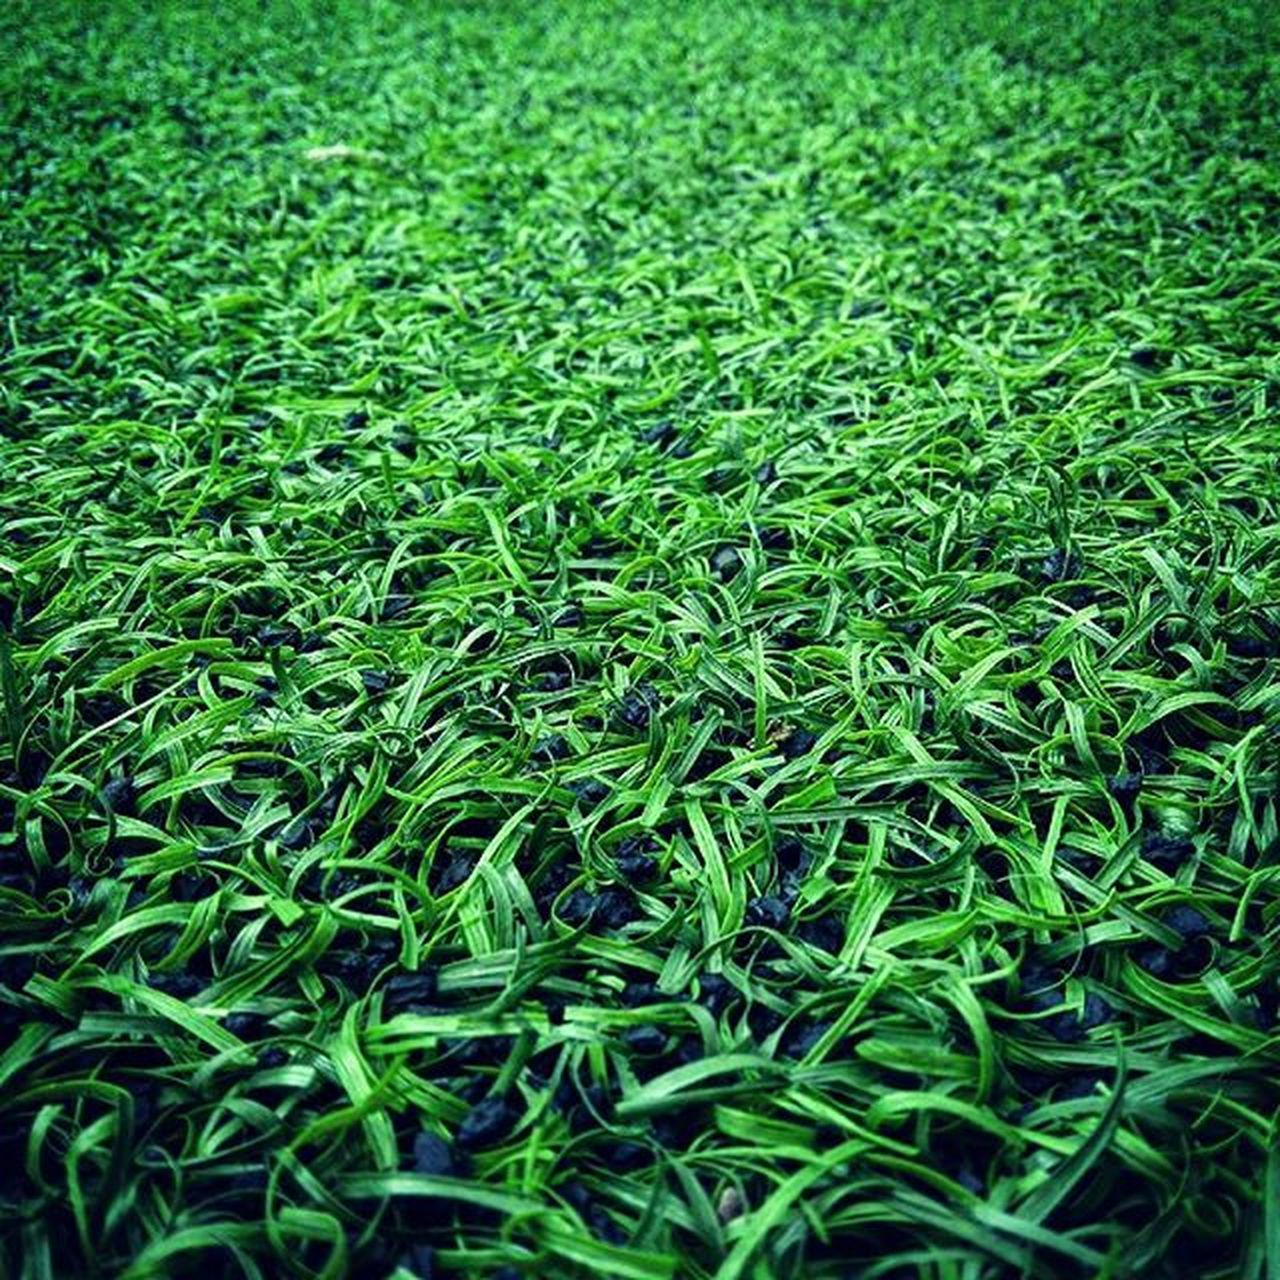 grass, green color, full frame, field, backgrounds, no people, nature, day, outdoors, close-up